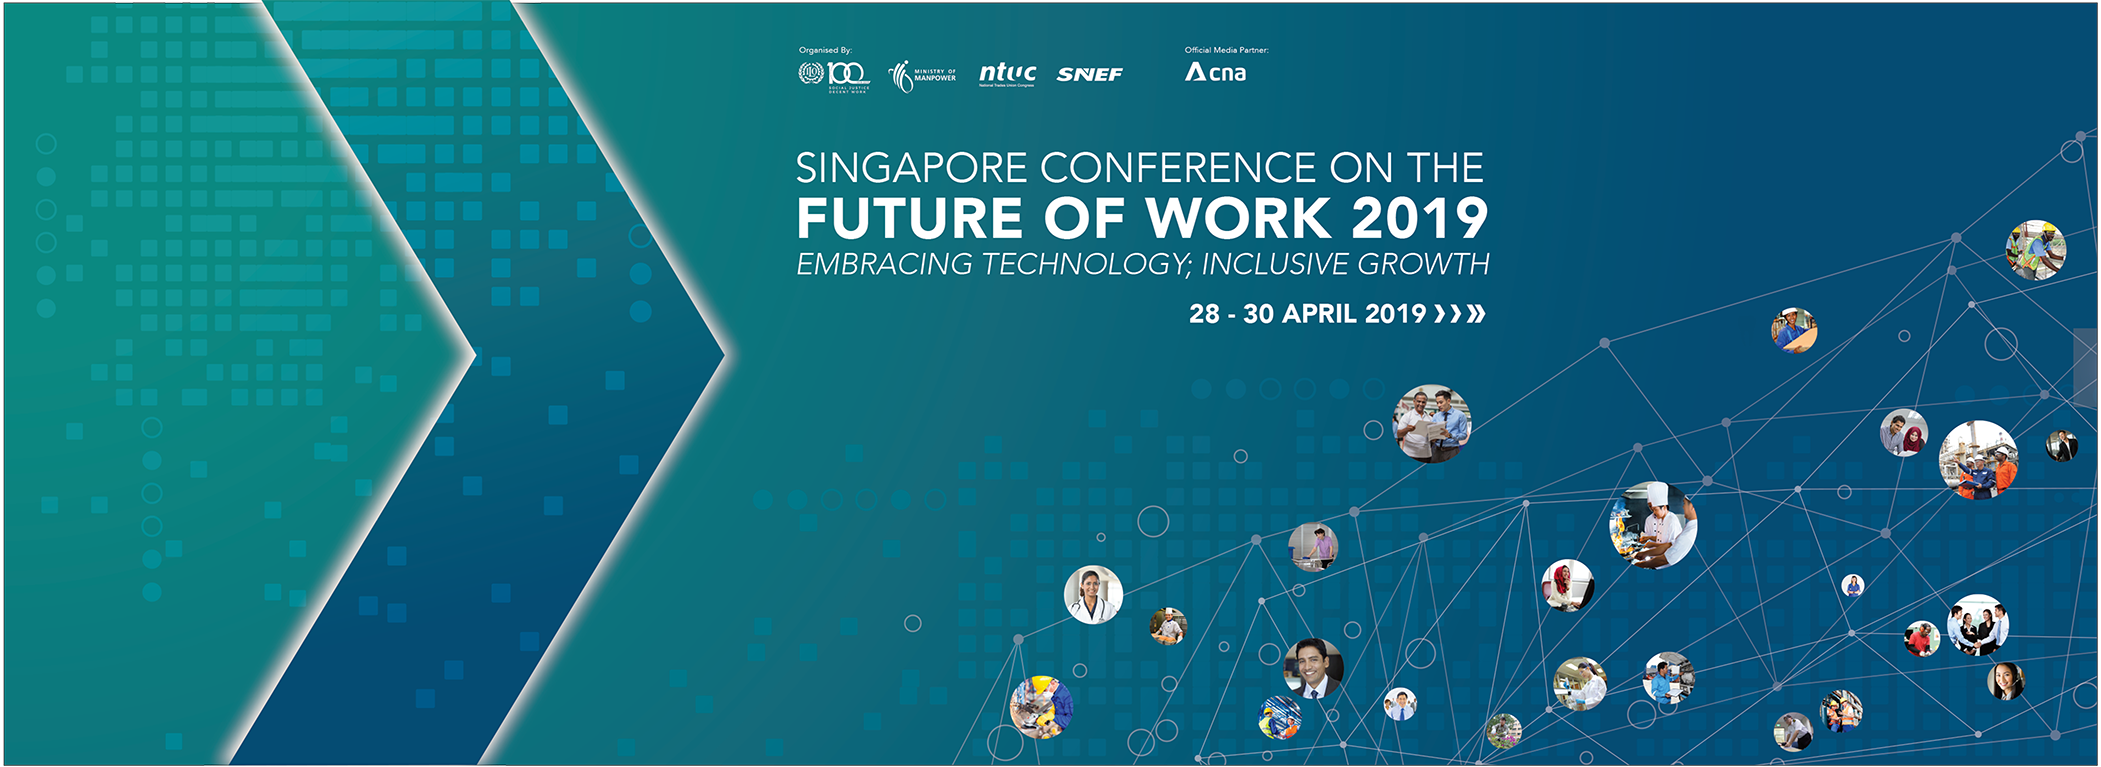 fow-conference-banner